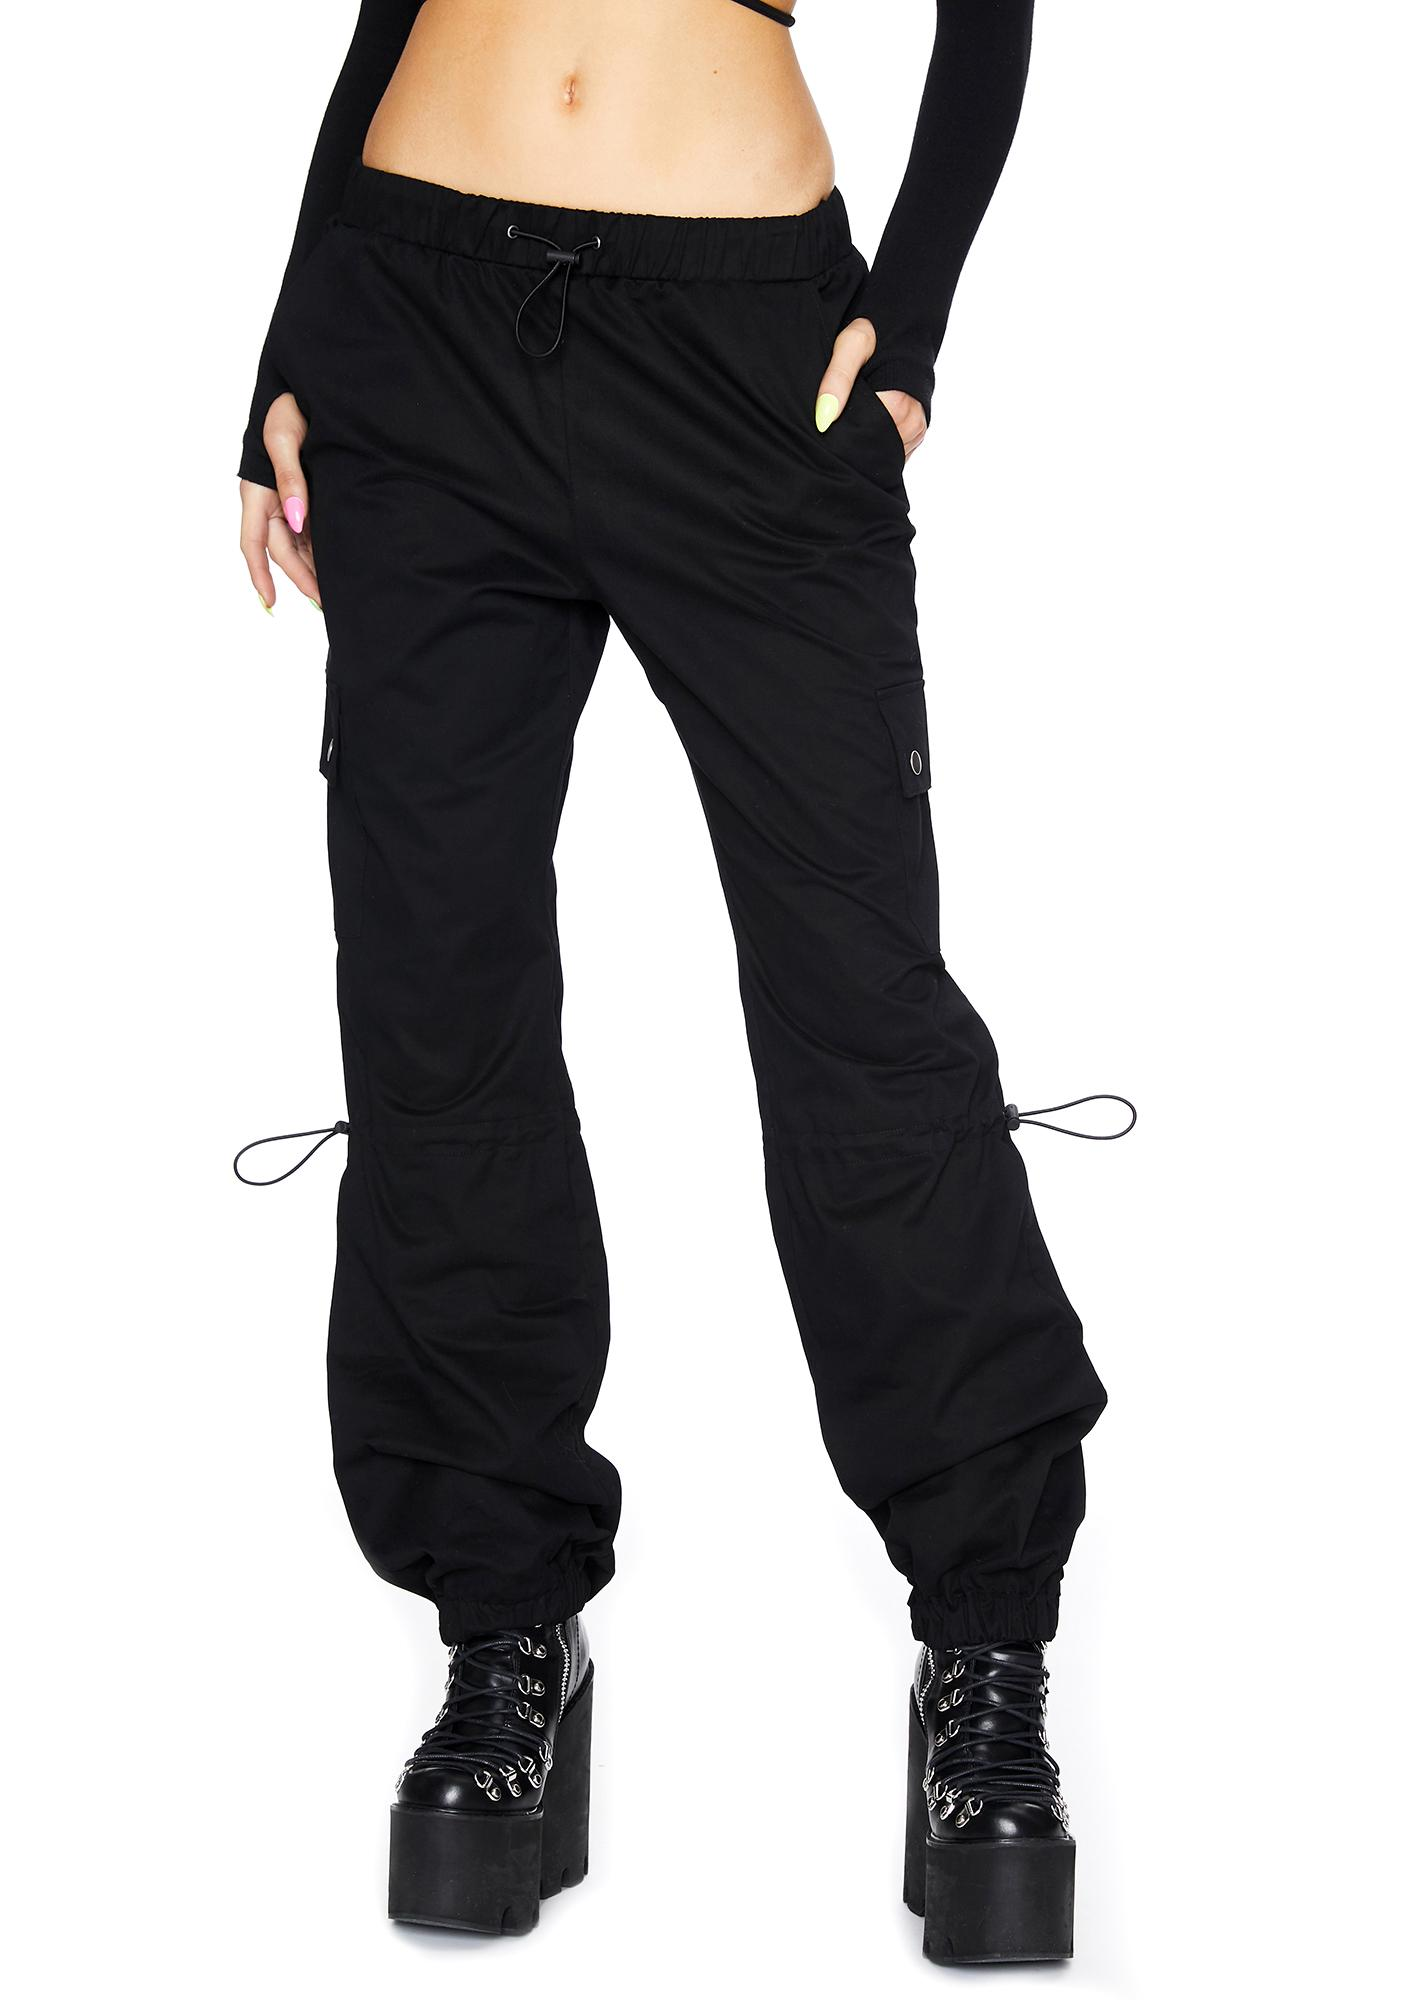 Club Exx Enter The Void Cargo Pants